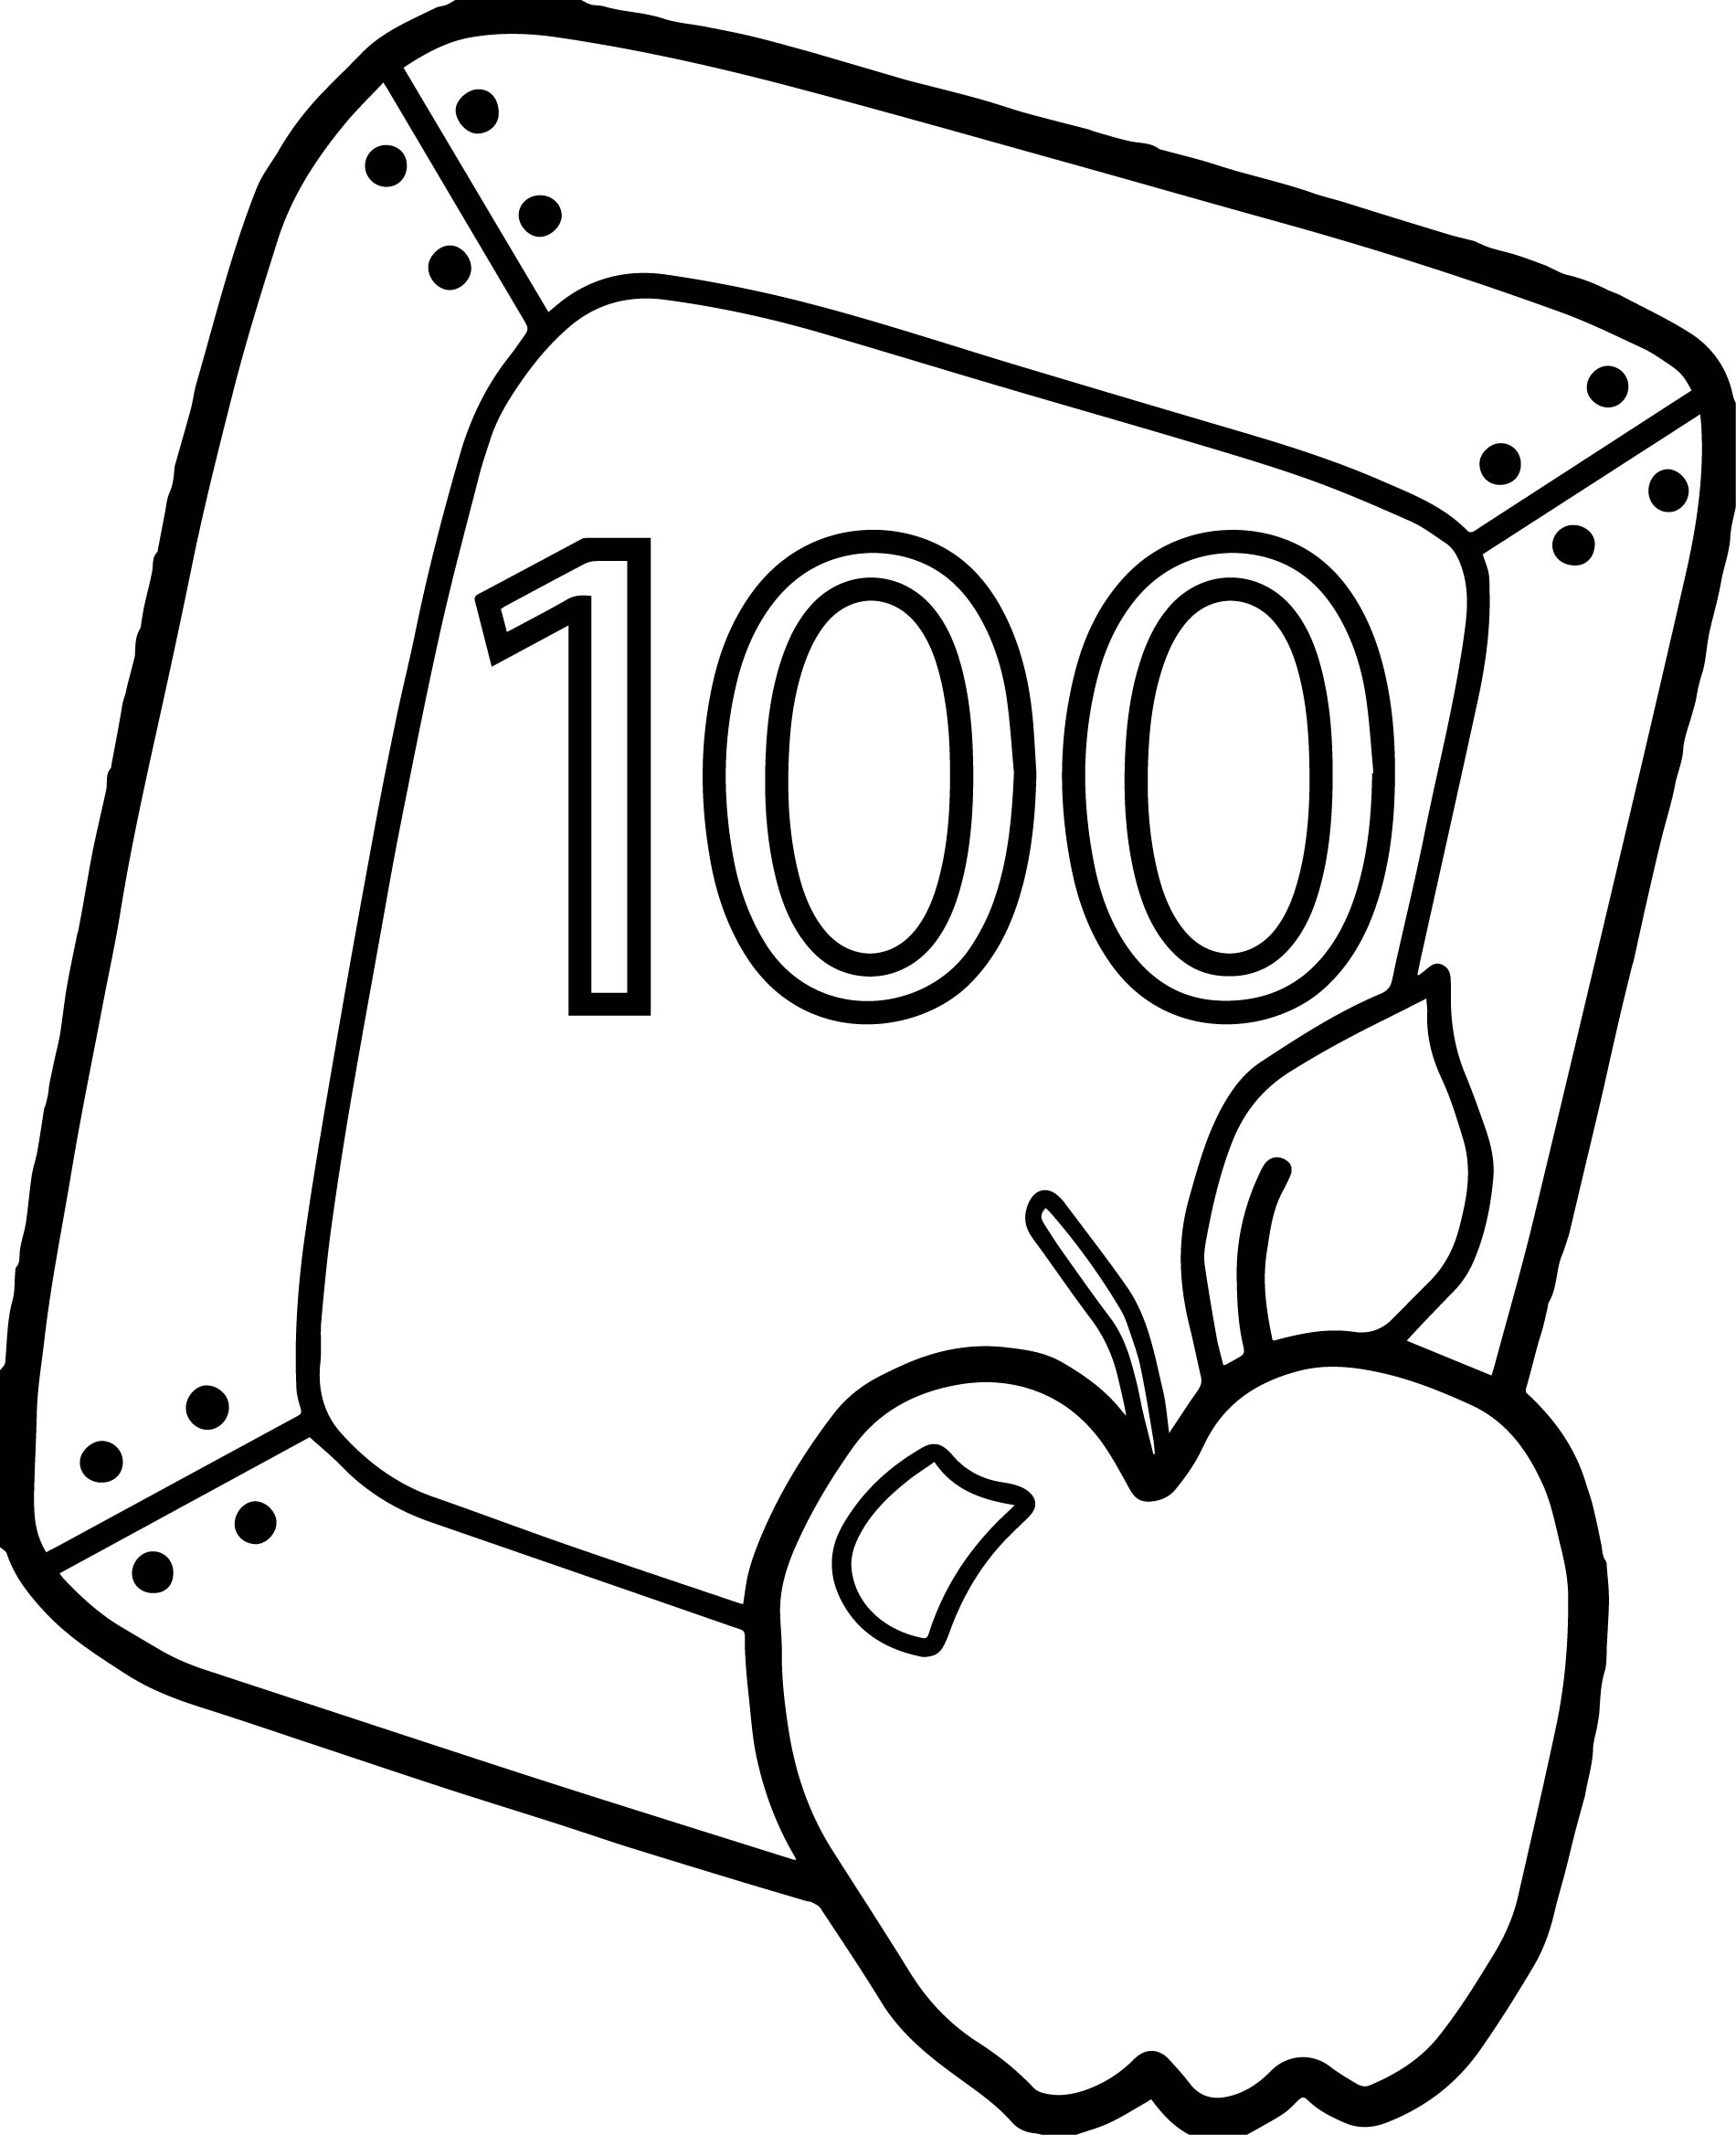 100 Days Of School Apple Board Coloring Page